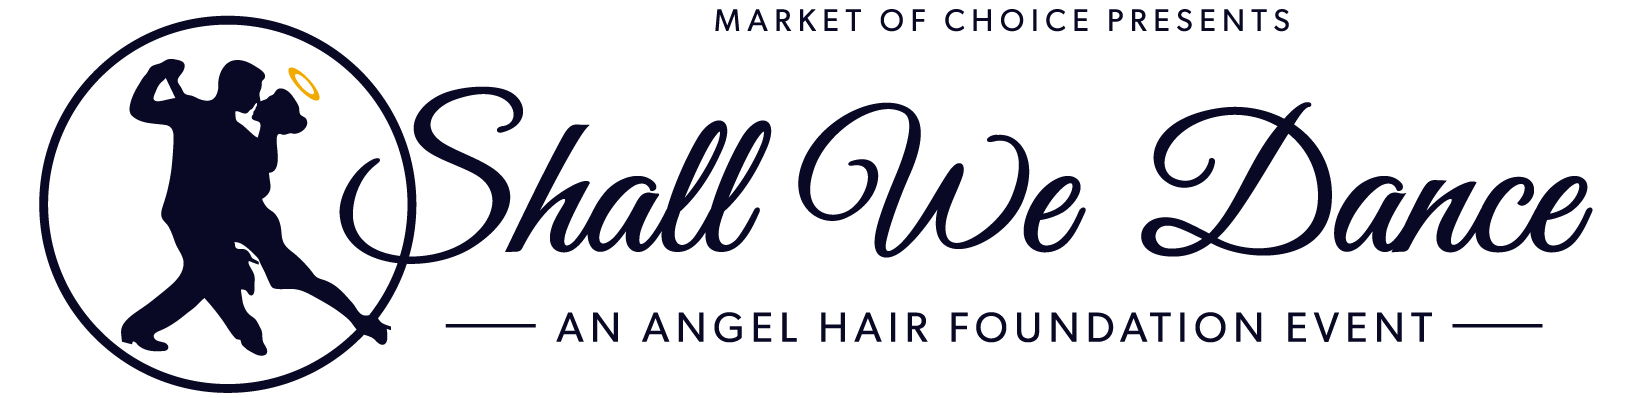 shall-we-dance-angelhair-foundation